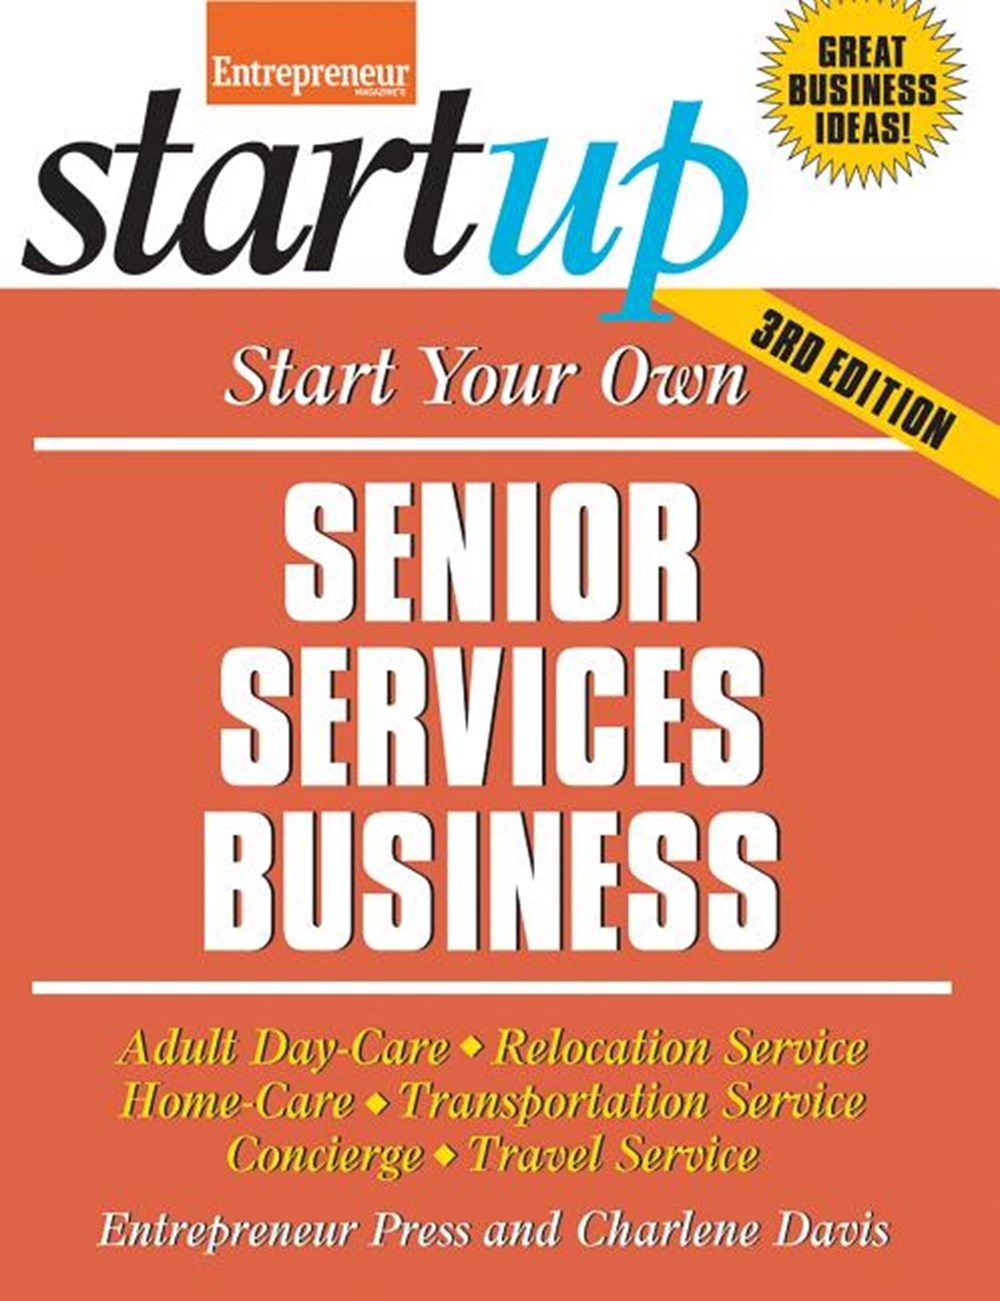 Start Your Own Senior Services Business: Adult Day-Care, Relocation Service, Home-Care, Transportati